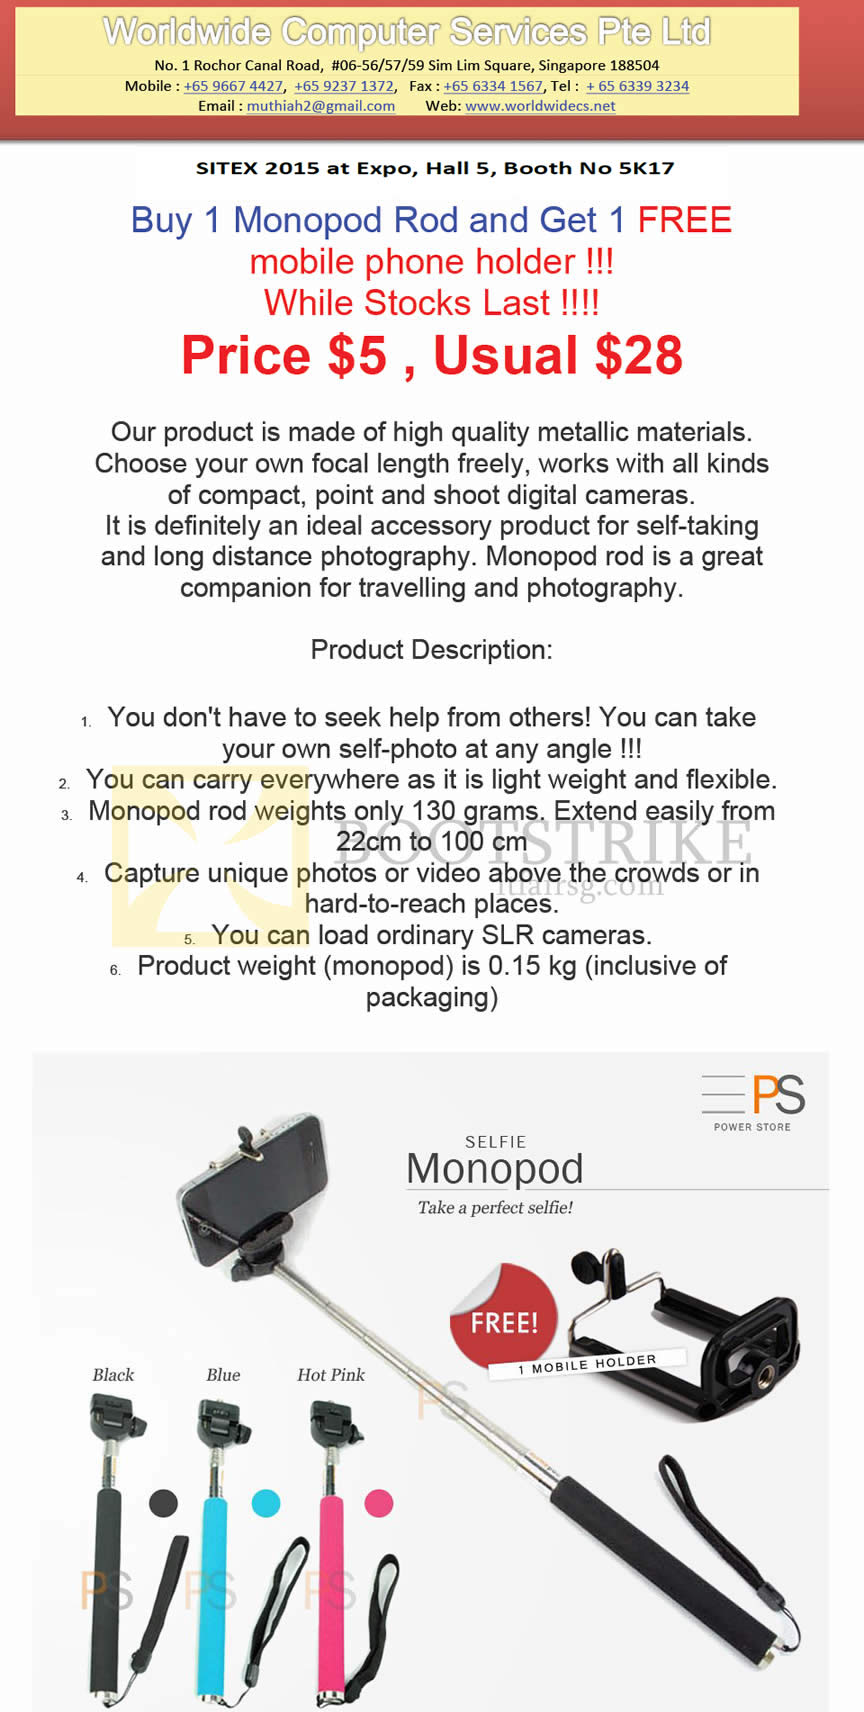 SITEX 2015 price list image brochure of Worldwide Computer Services Buy 1 Monopod Rod Get 1 Free